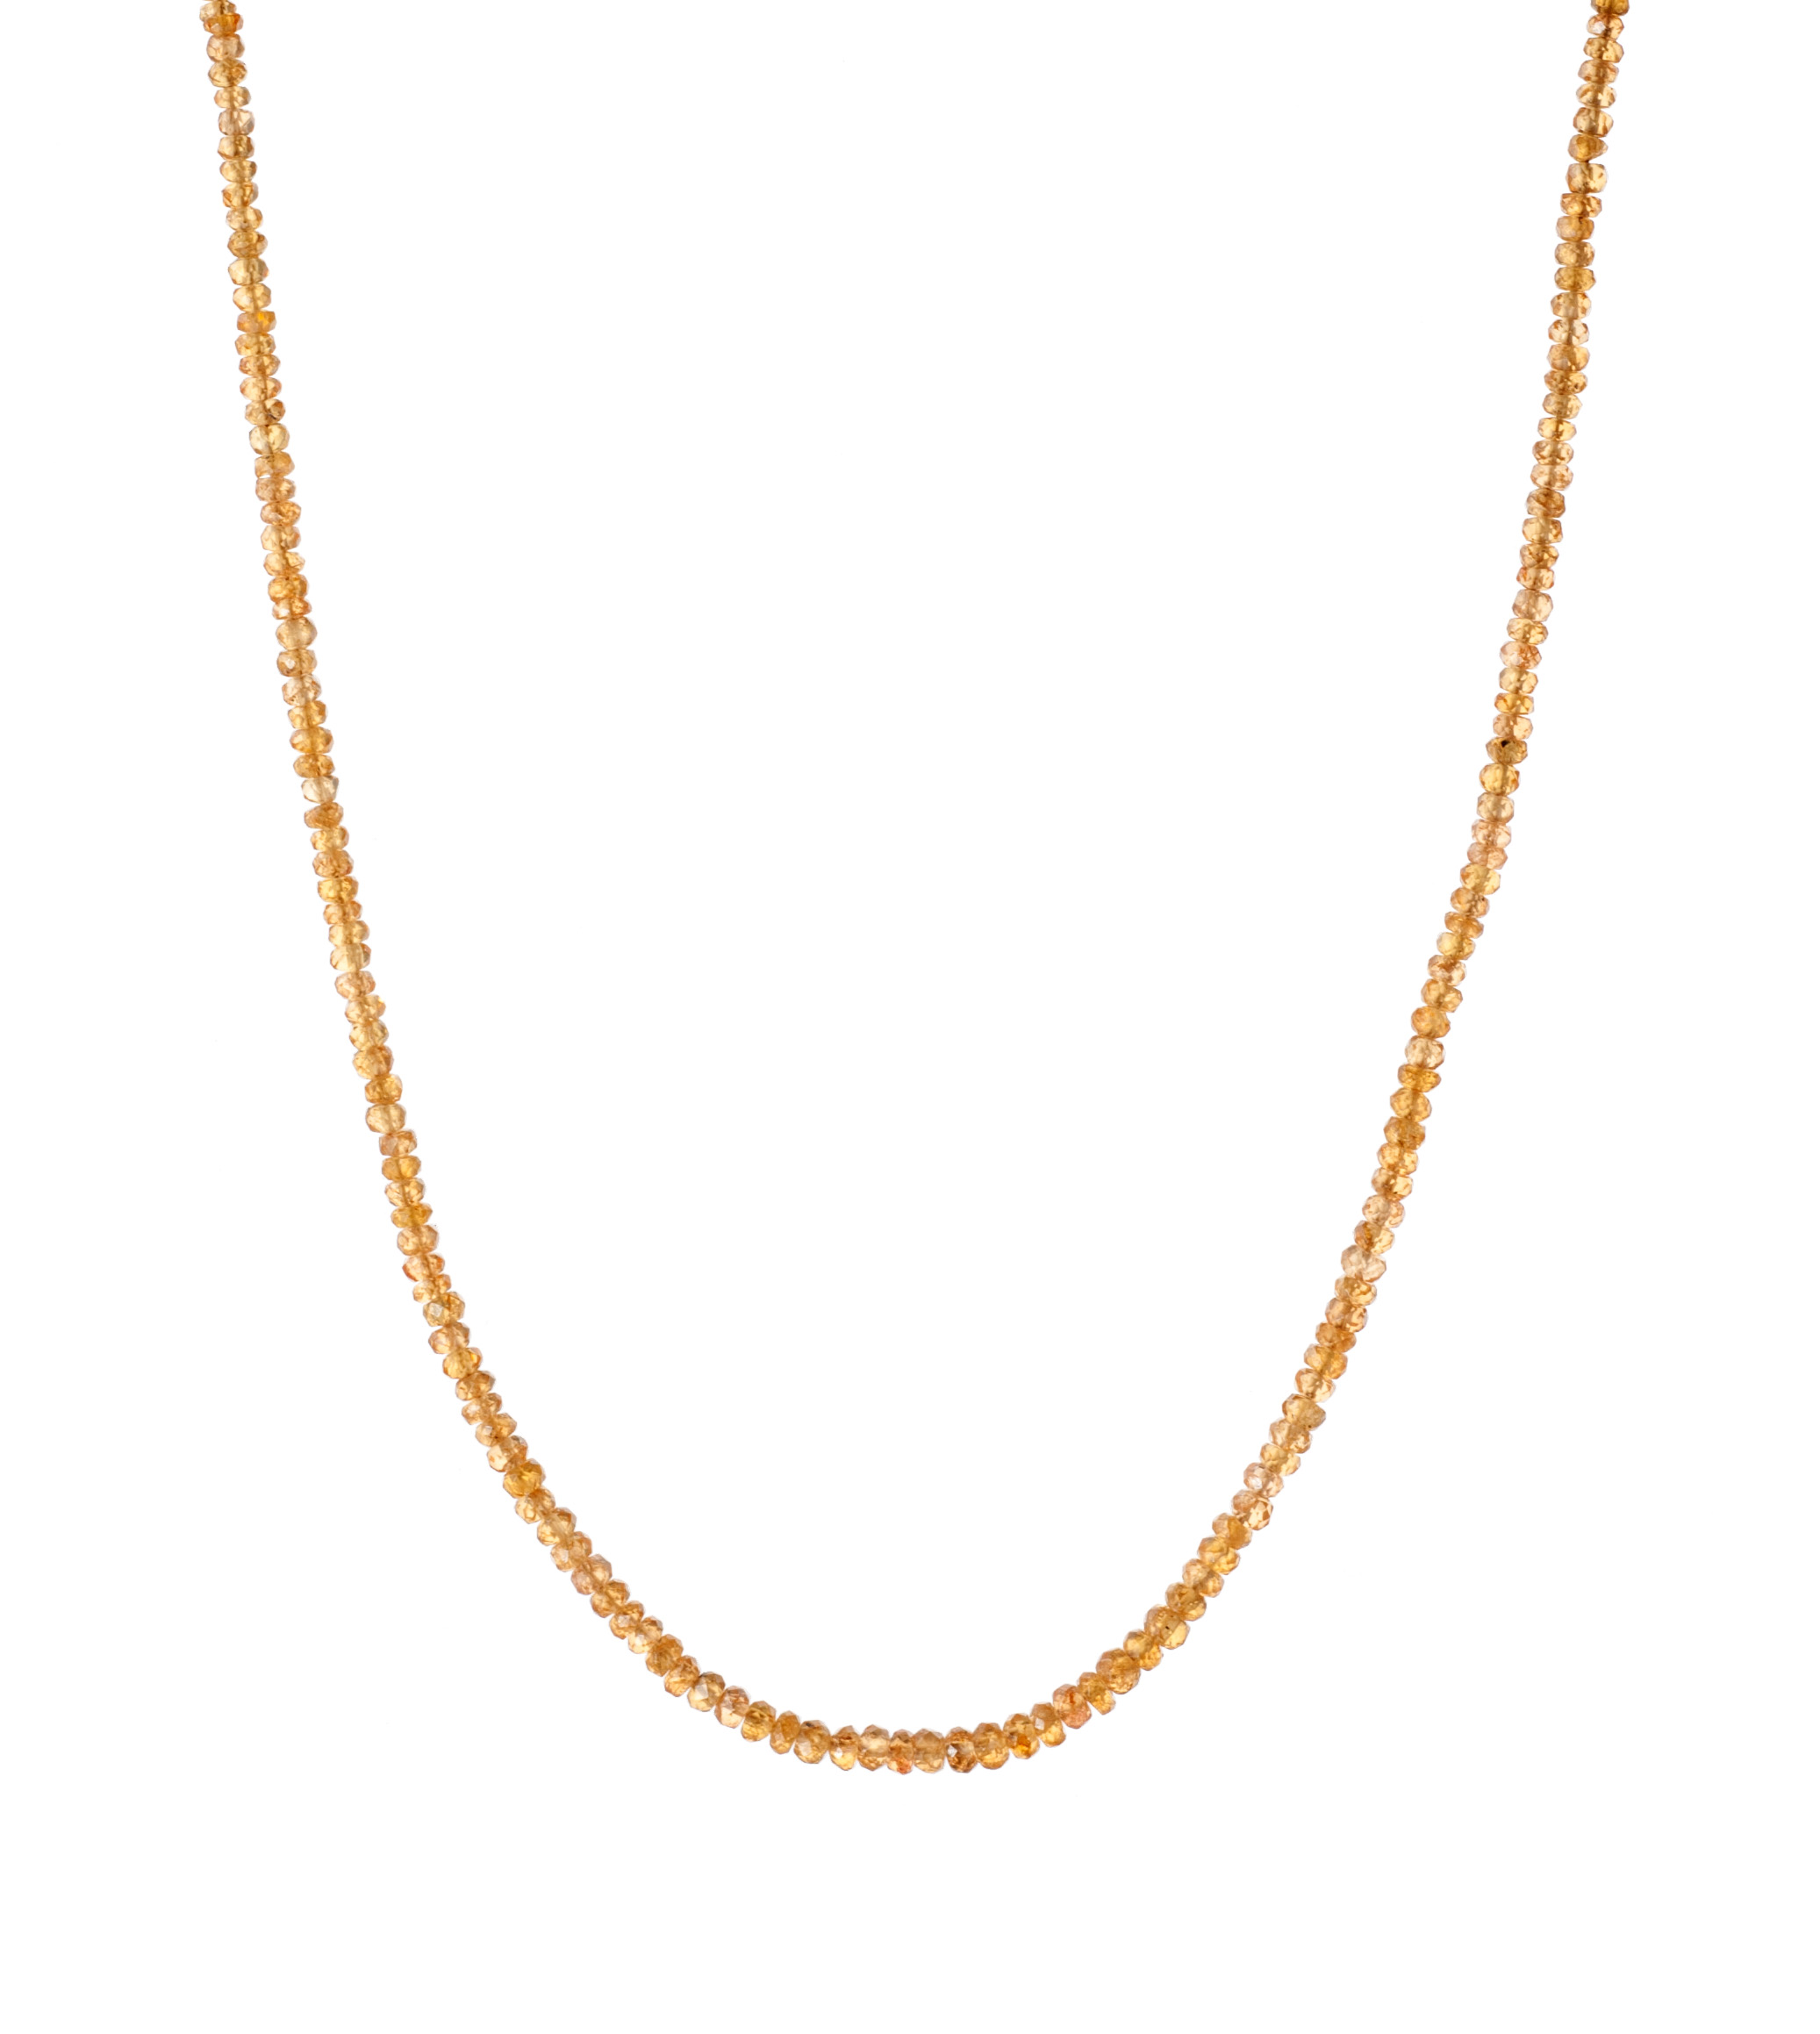 Spessartite bead necklace with 18-karat yellow gold clasp